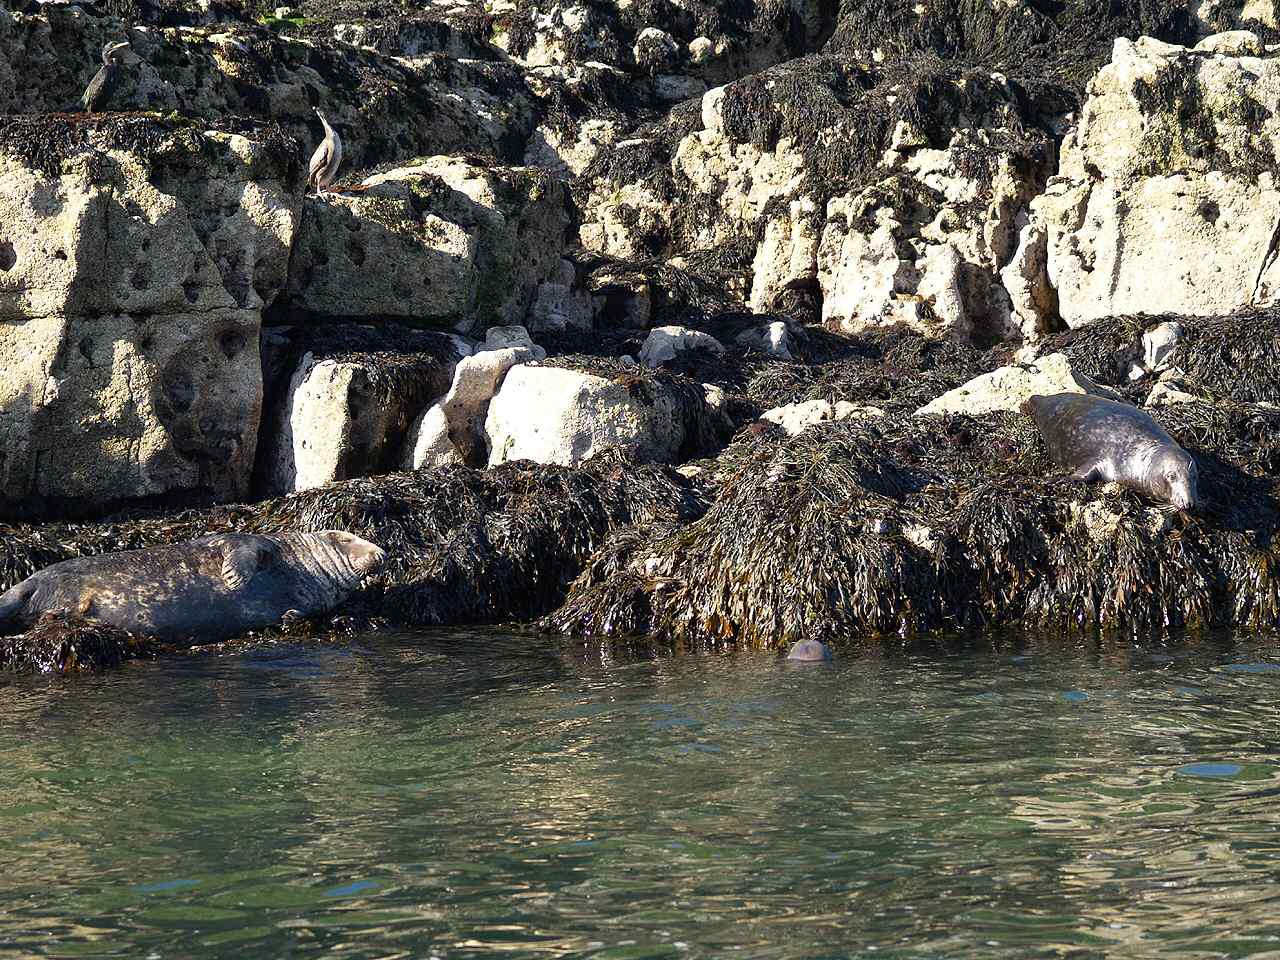 A small group of Grey Seals basking on the rocks at Puffin Island